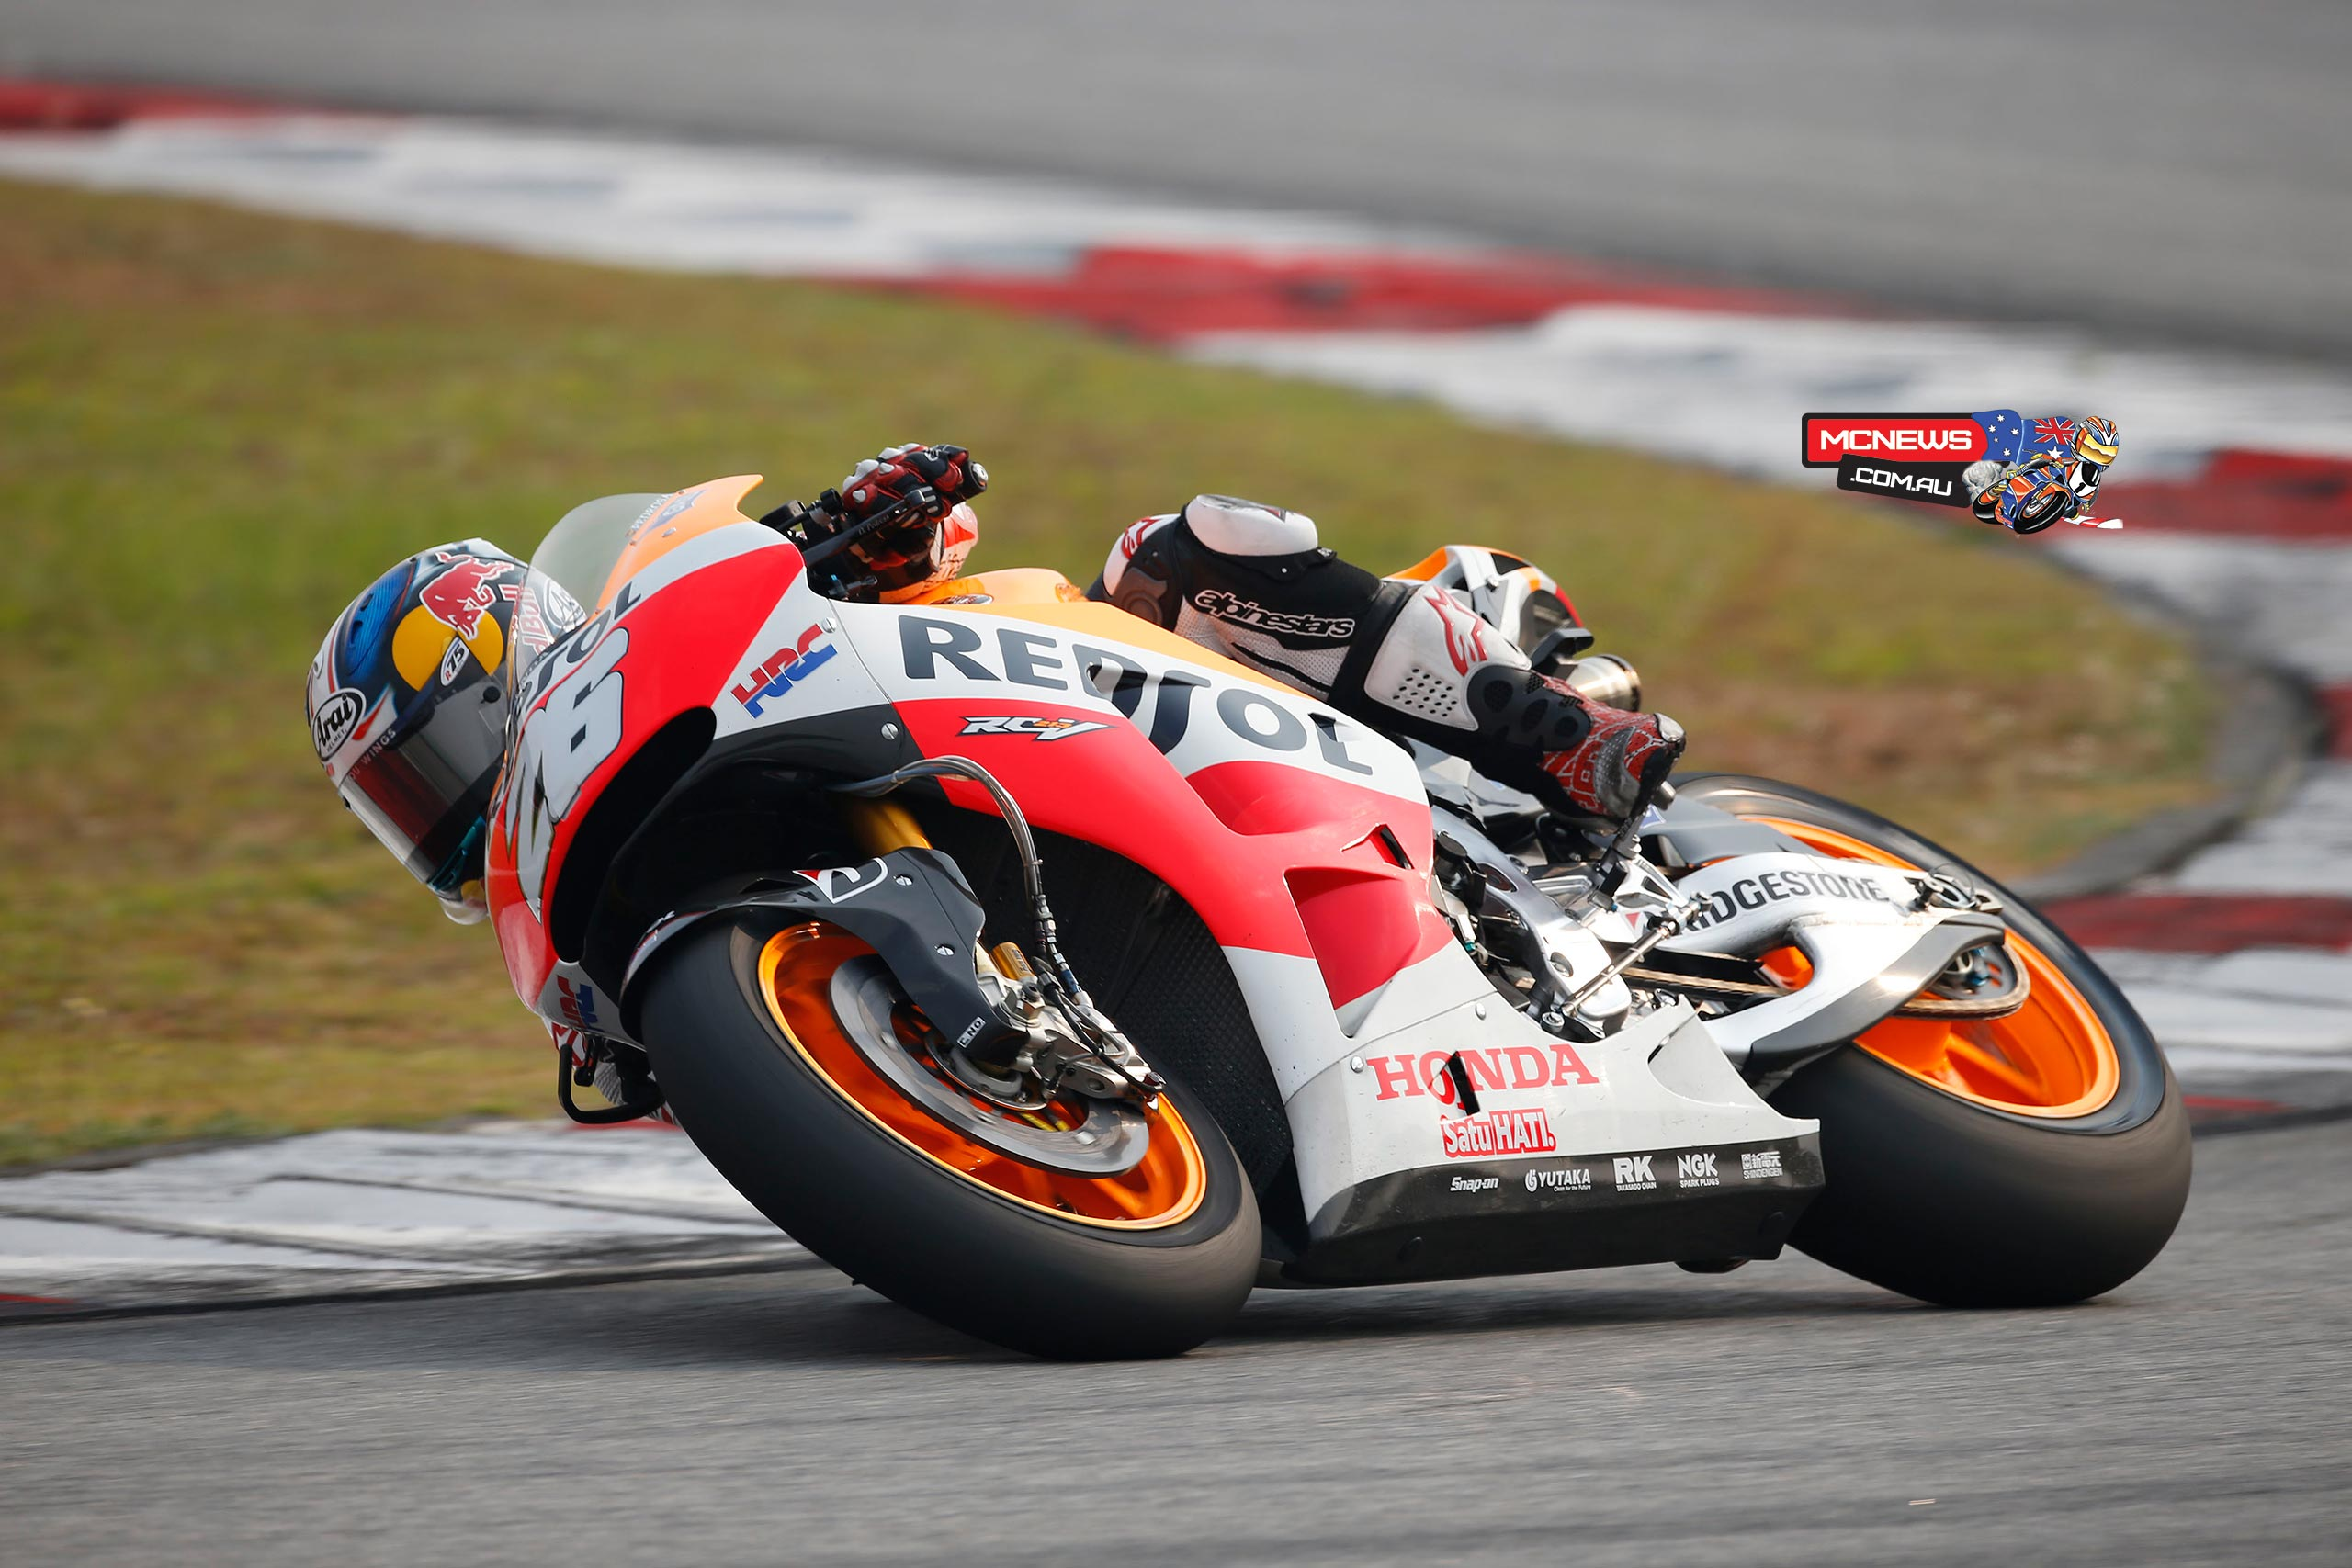 "Dani Pedrosa (Repsol Honda): 1st, 2m 00.039s ""Things went well this afternoon, even though this morning we were still having some issues and I wasn't able to ride comfortably. I had to stop early in order to make some big changes to the bike, and when we restarted after lunch I felt more comfortable and put in better laps. We focused on the front end and were able to find a good set-up. Tomorrow we will focus on making progress with the rear, because we have to get the new tyre working better and increase grip. If all goes well, then perhaps tomorrow we will be able to do a race simulation."""